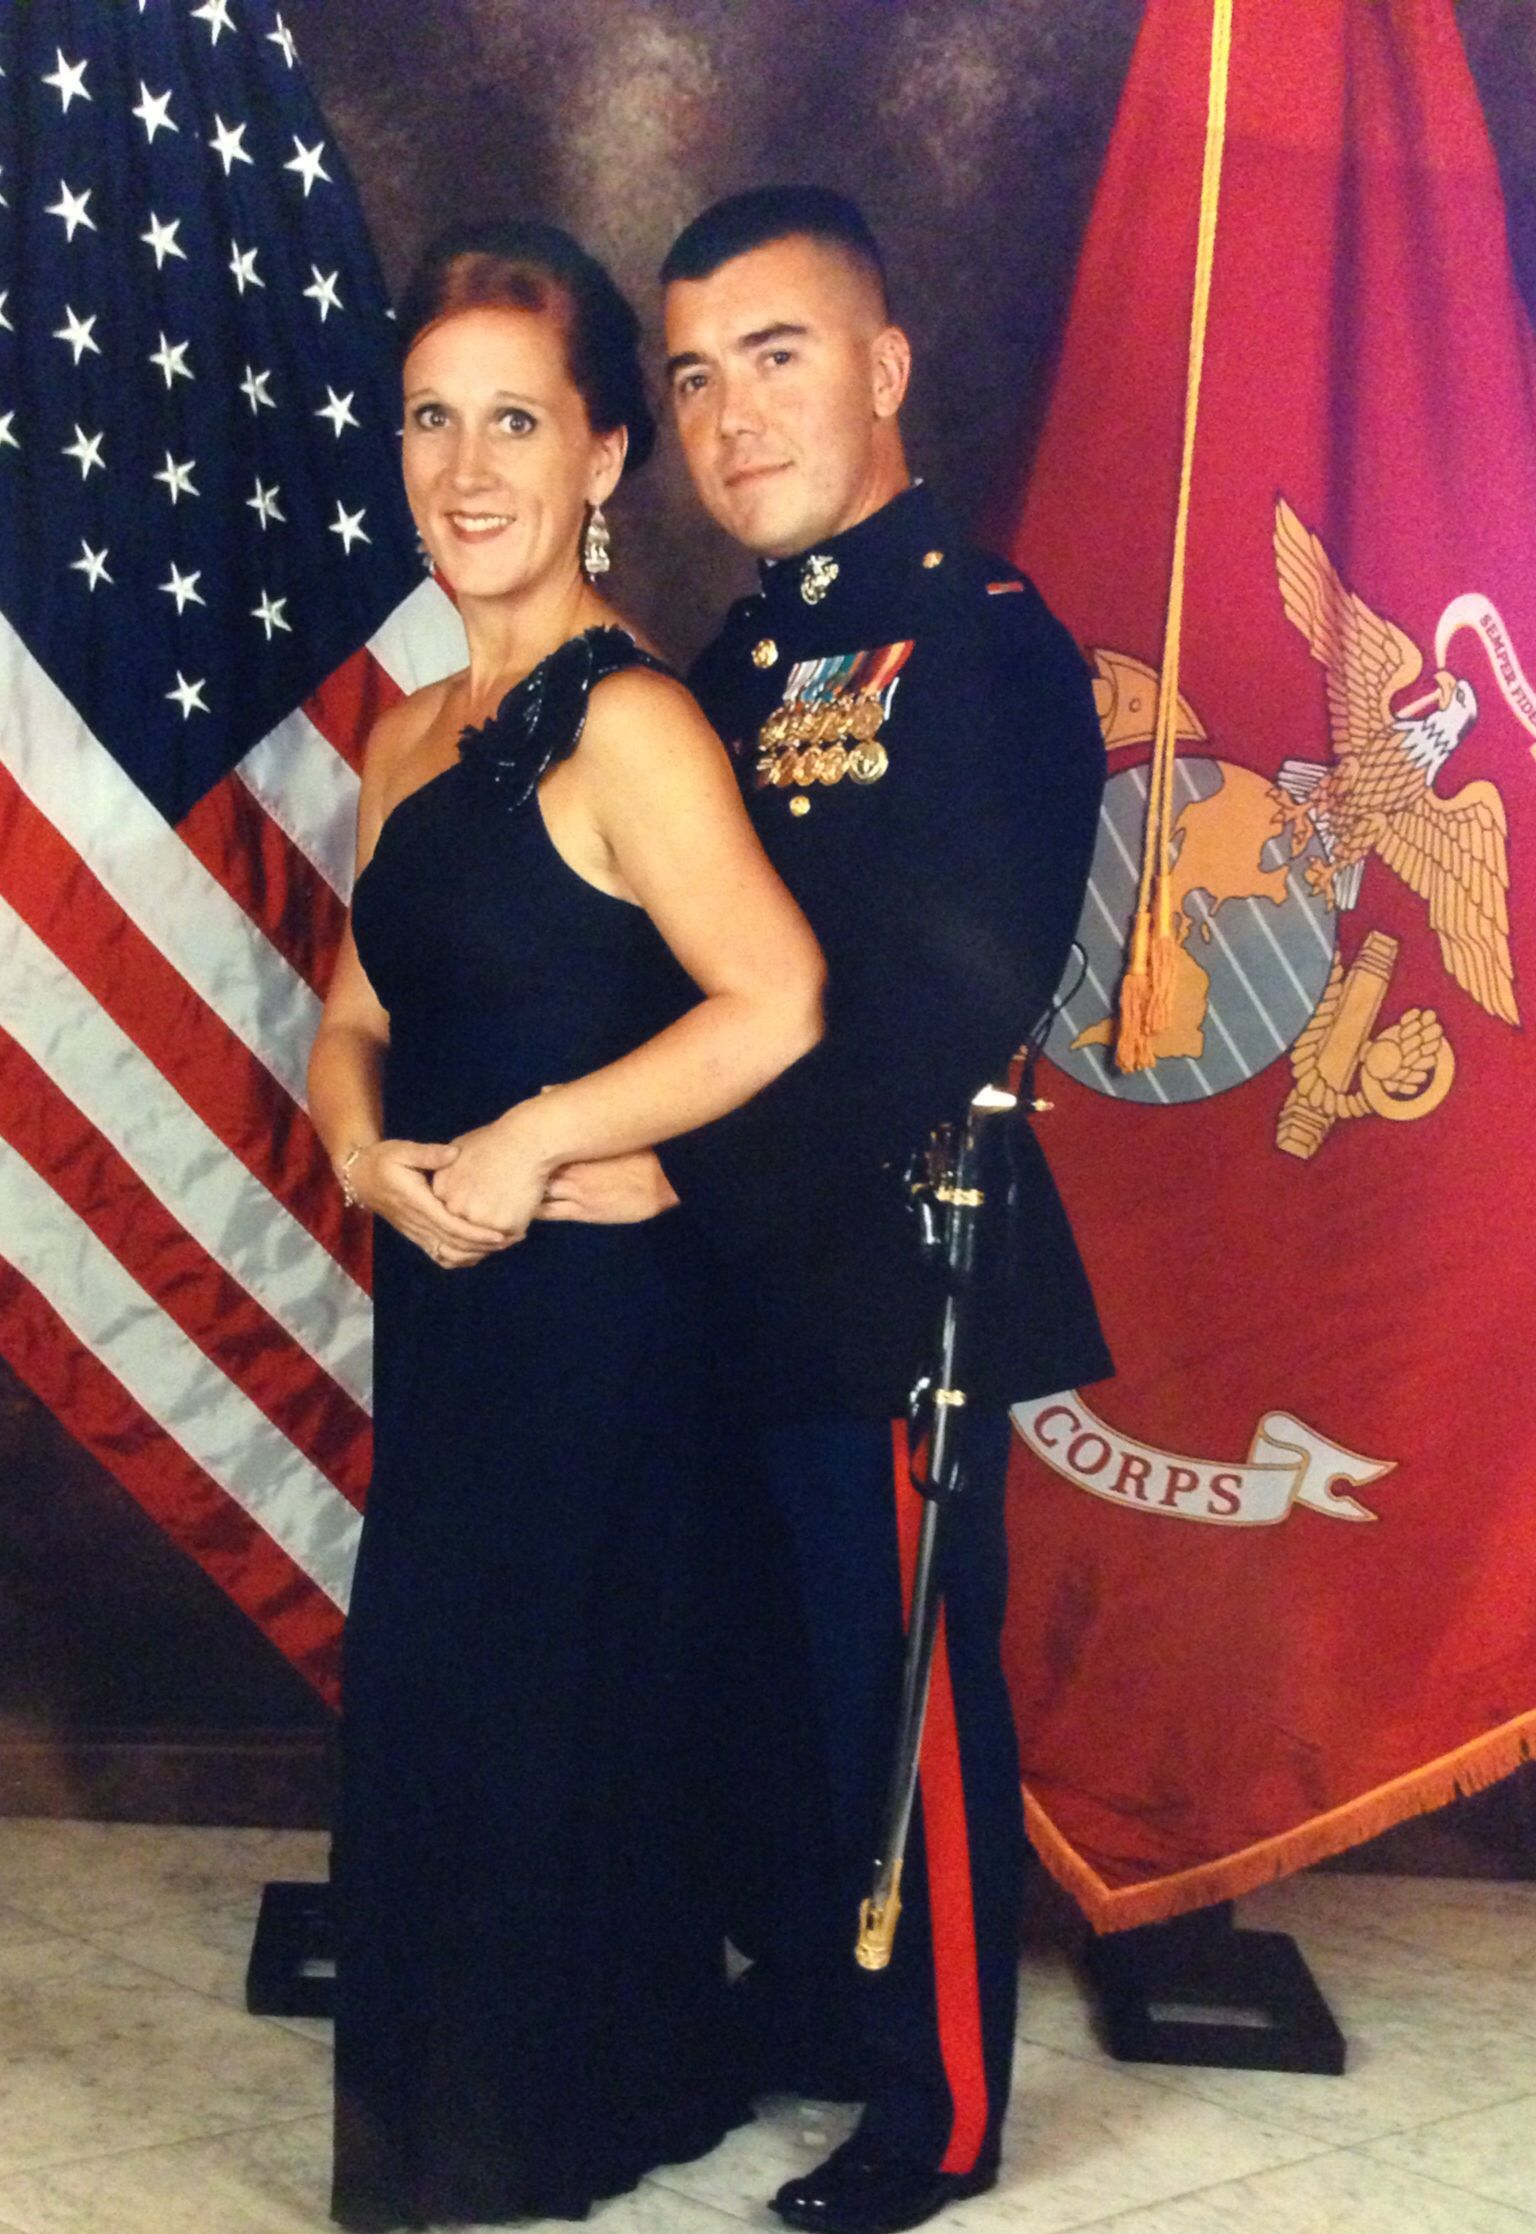 Our Military Ball picture 2013 Airforce wife, Formal